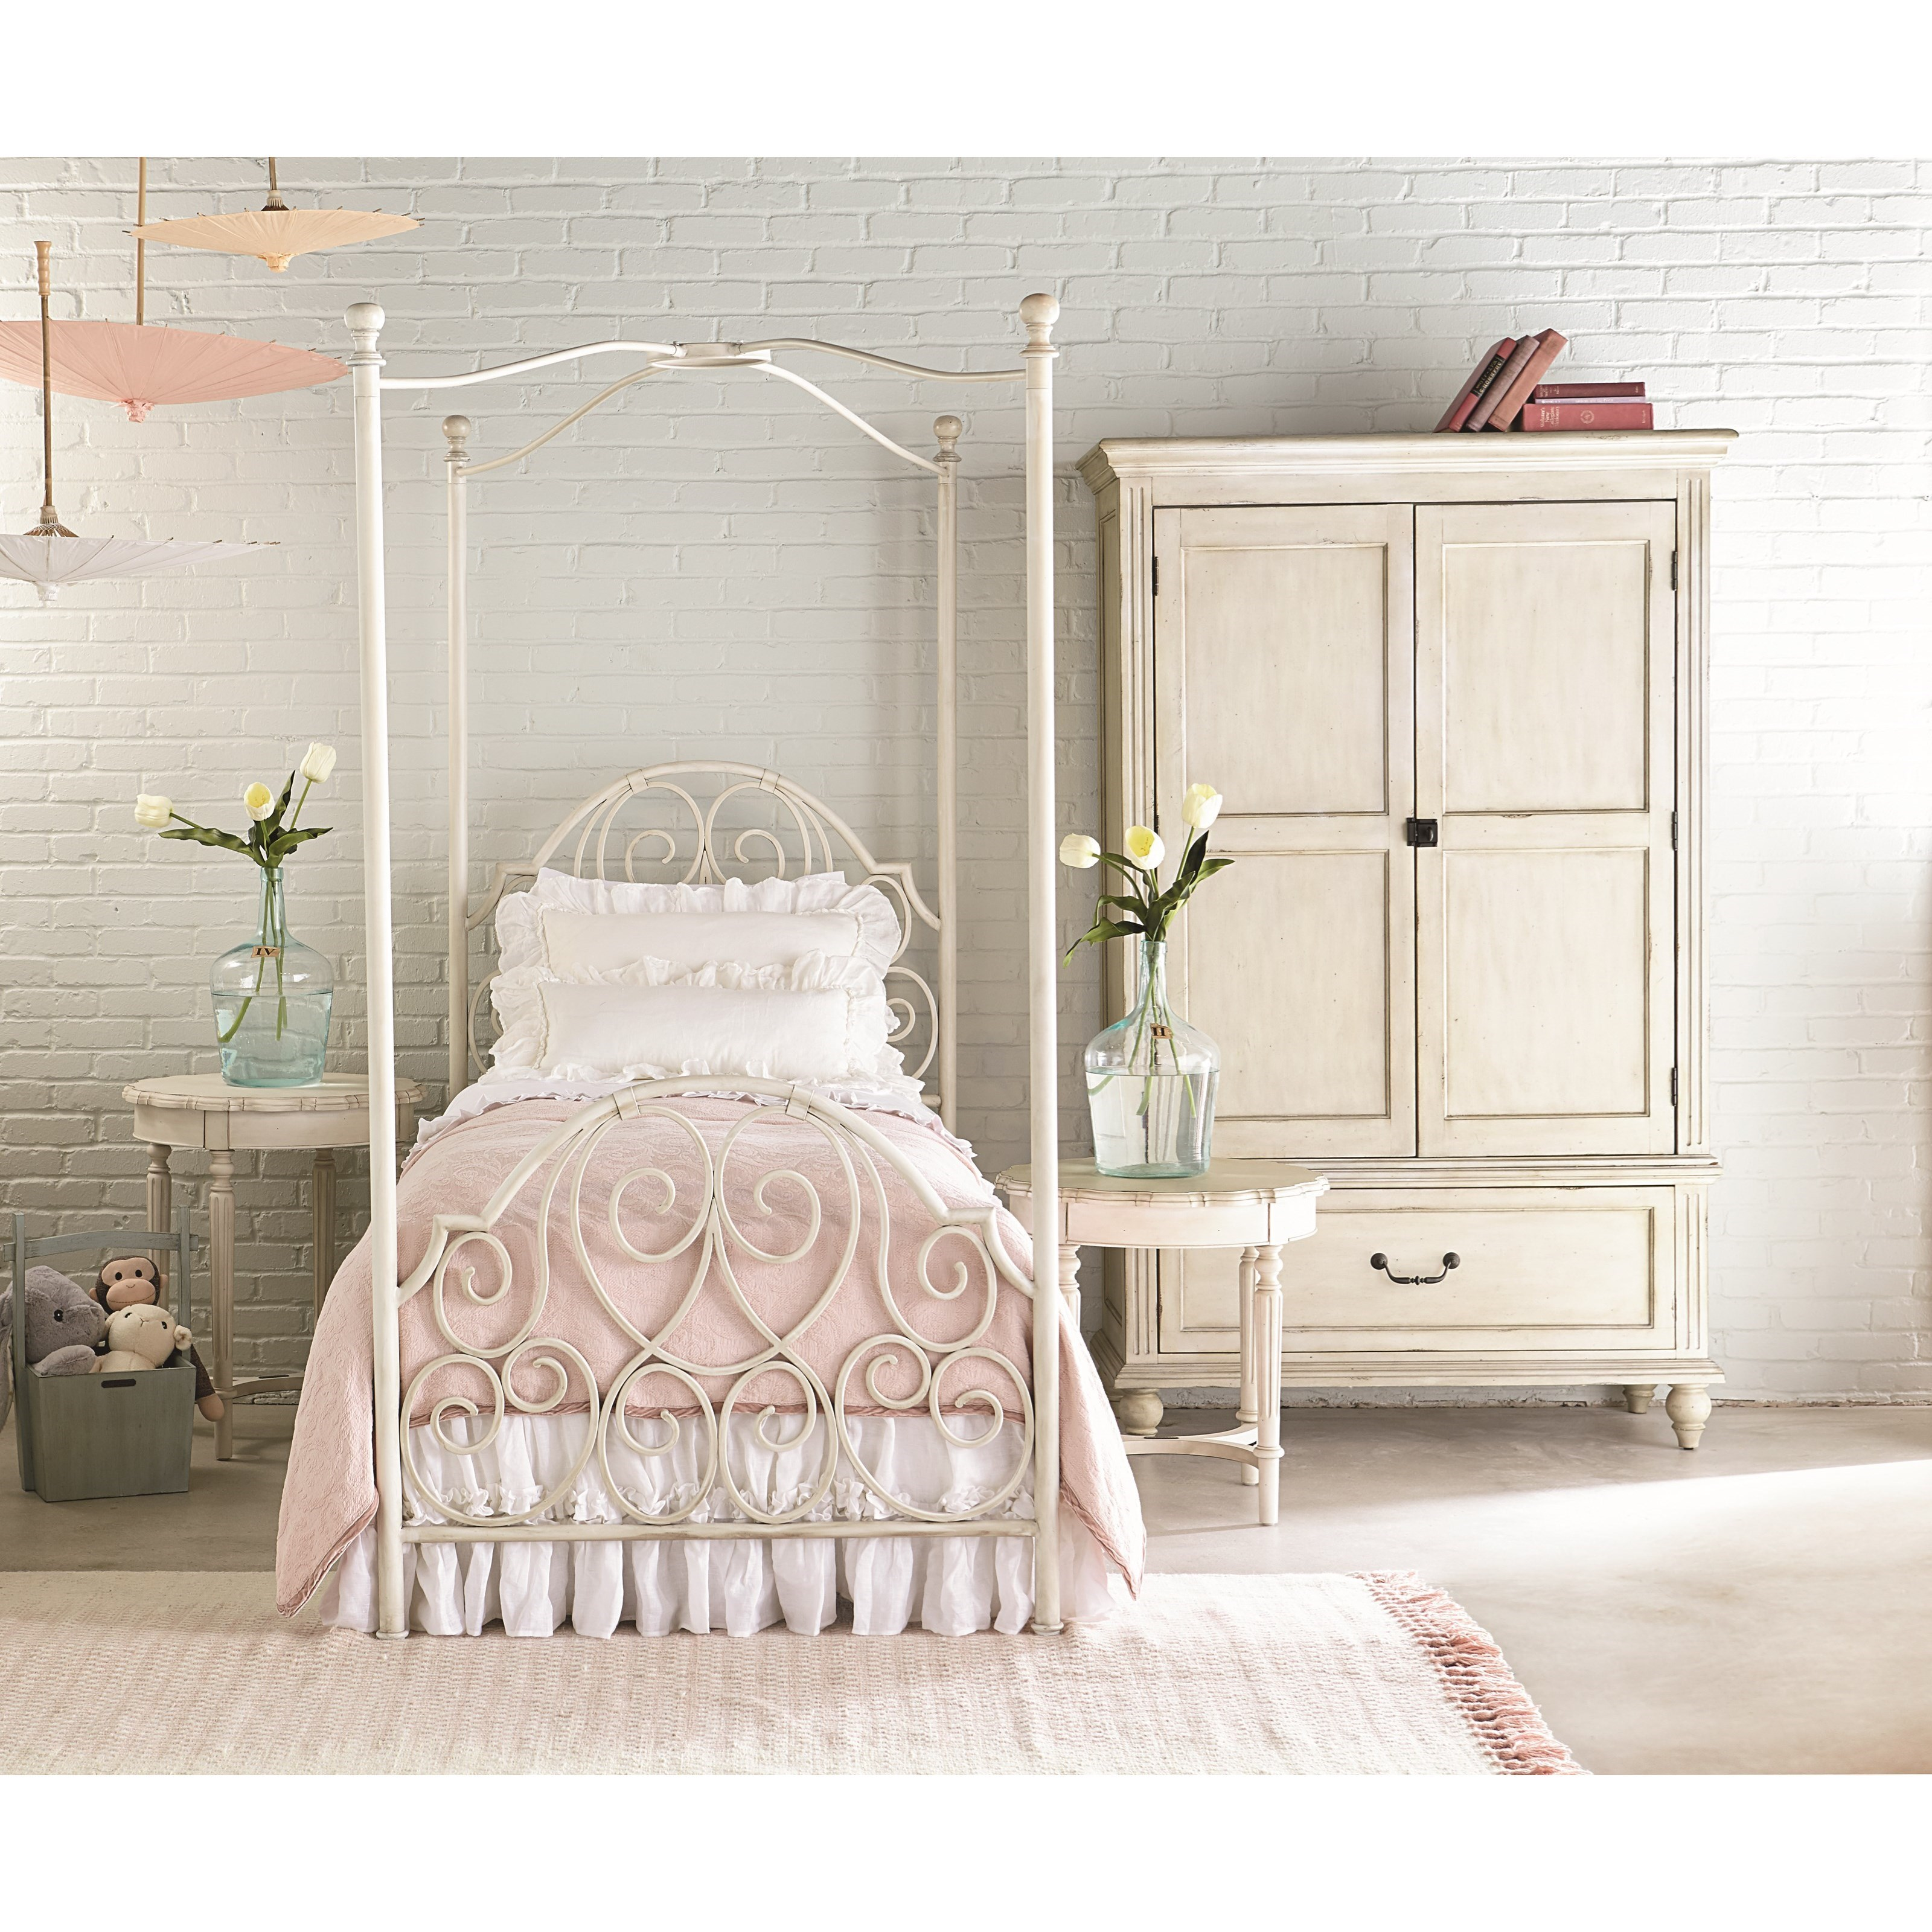 Magnolia Home By Joanna Gaines French InspiredTwin Bedroom Group ...